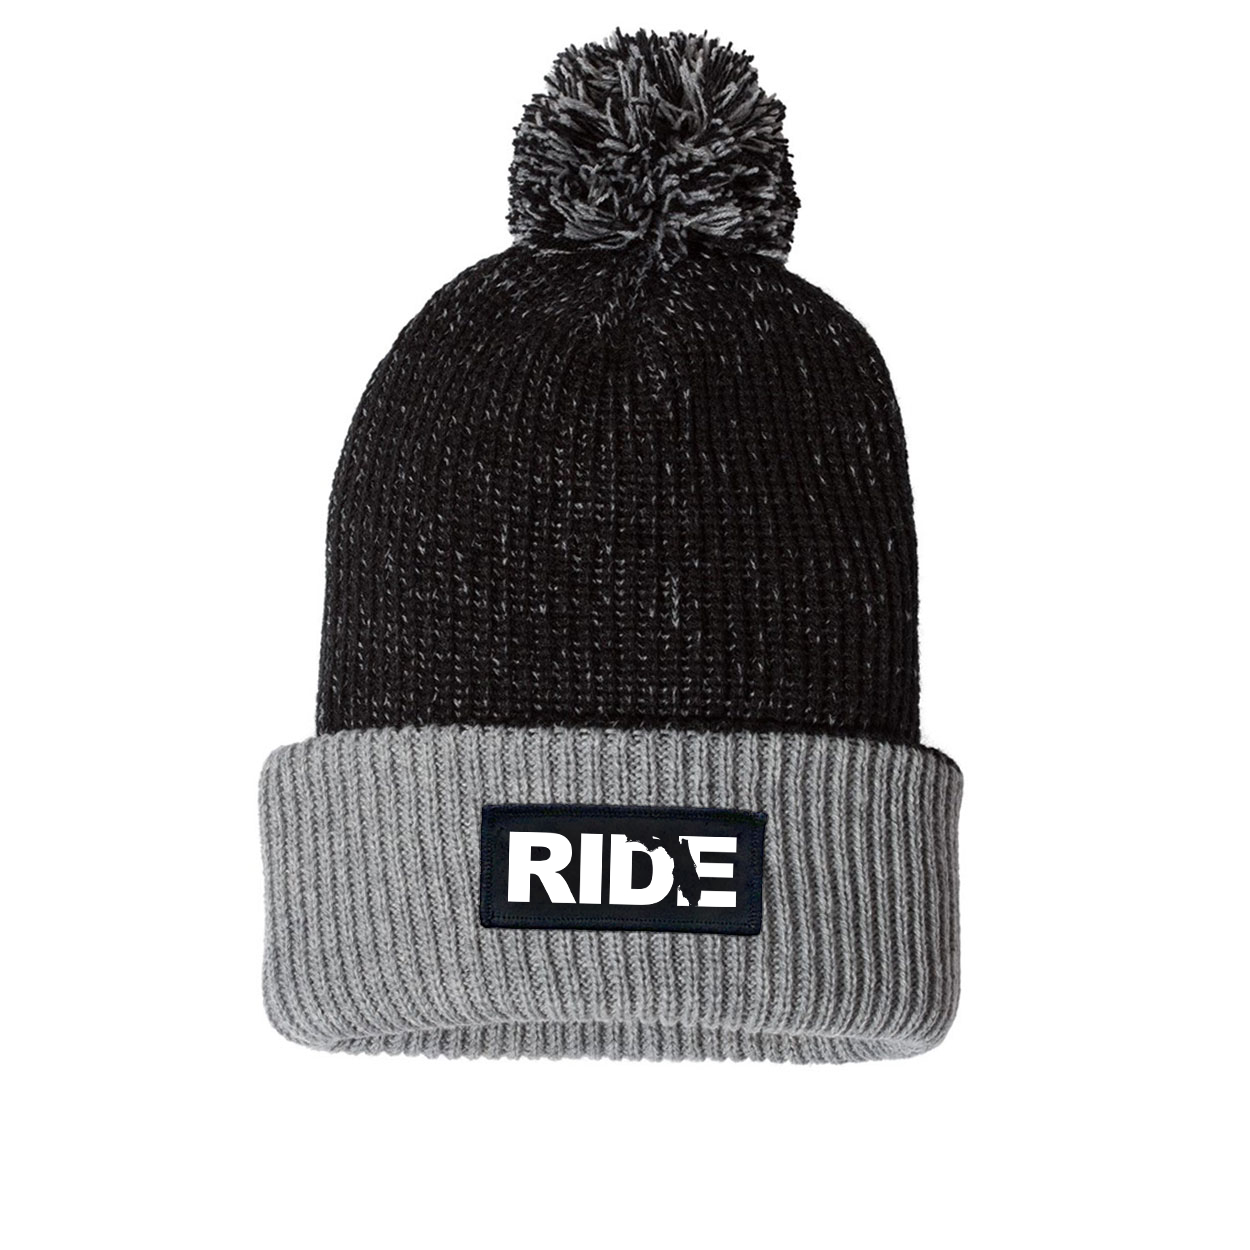 Ride Florida Night Out Woven Patch Roll Up Pom Knit Beanie Black/Gray (White Logo)